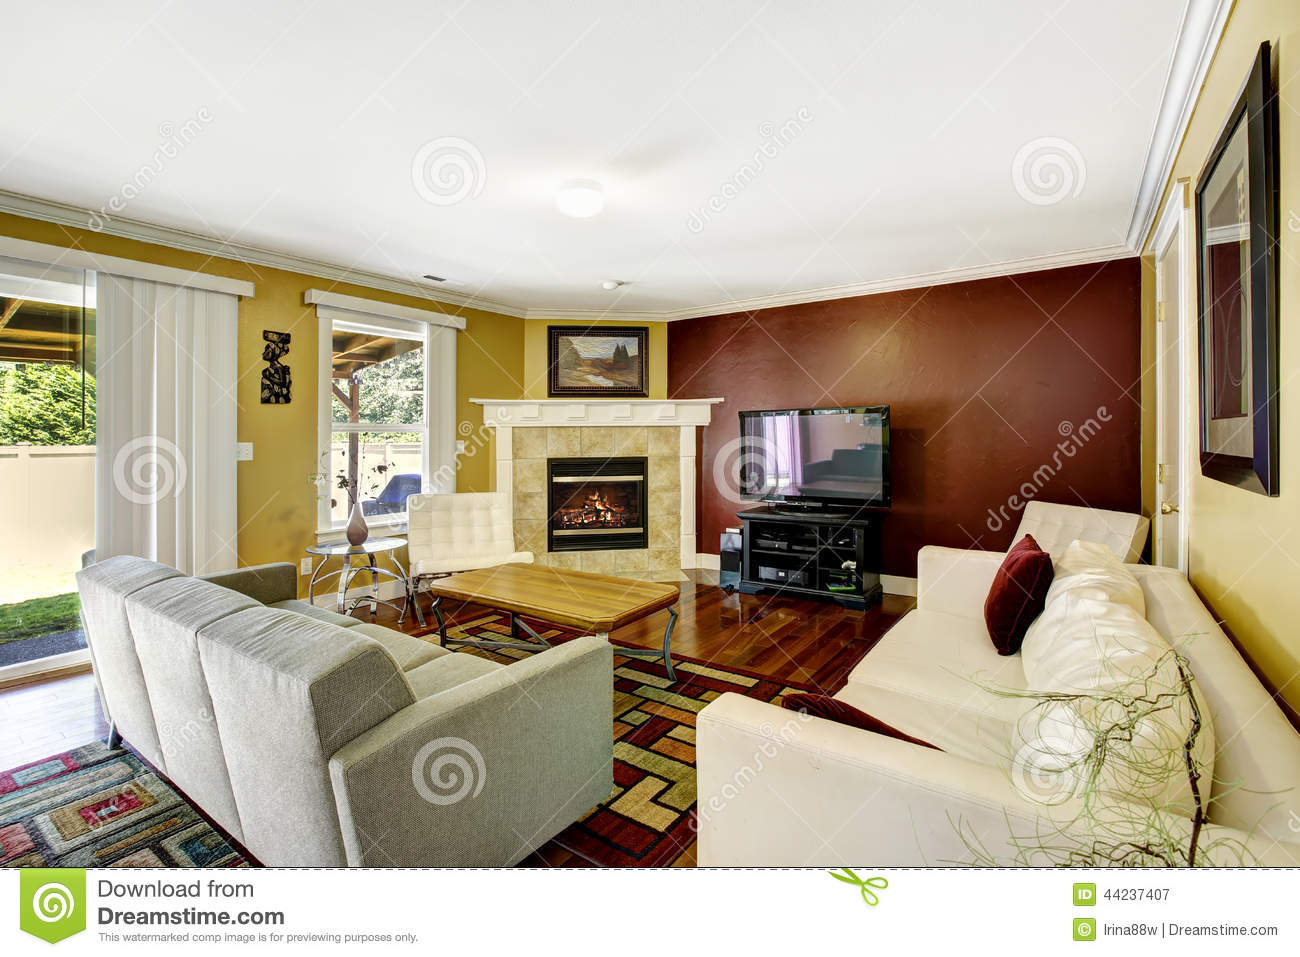 Home Interior With Contrast Color Walls